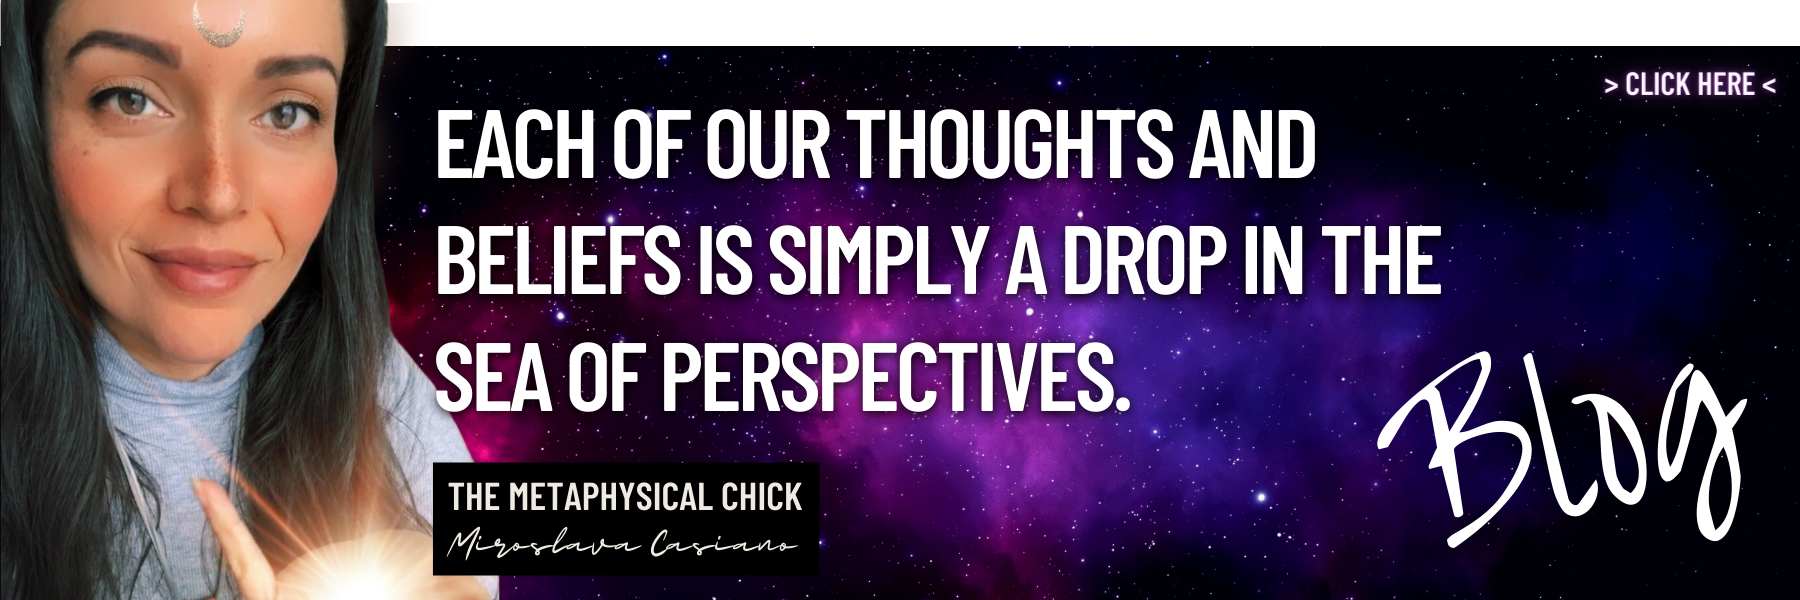 THE METAPHYSICAL CHICK BLOG